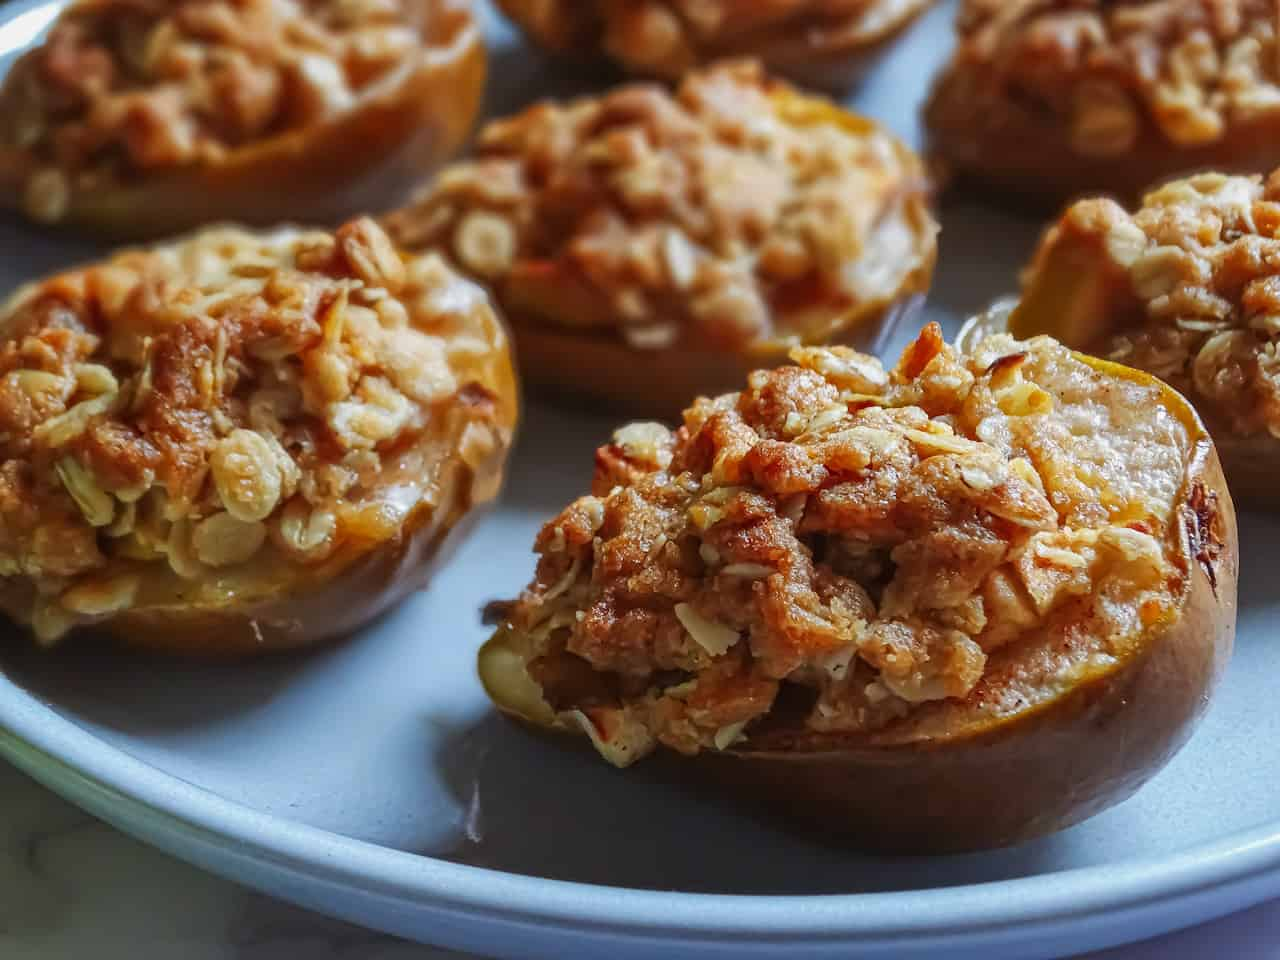 baked pears filled with apple crisp topping on a grey plate